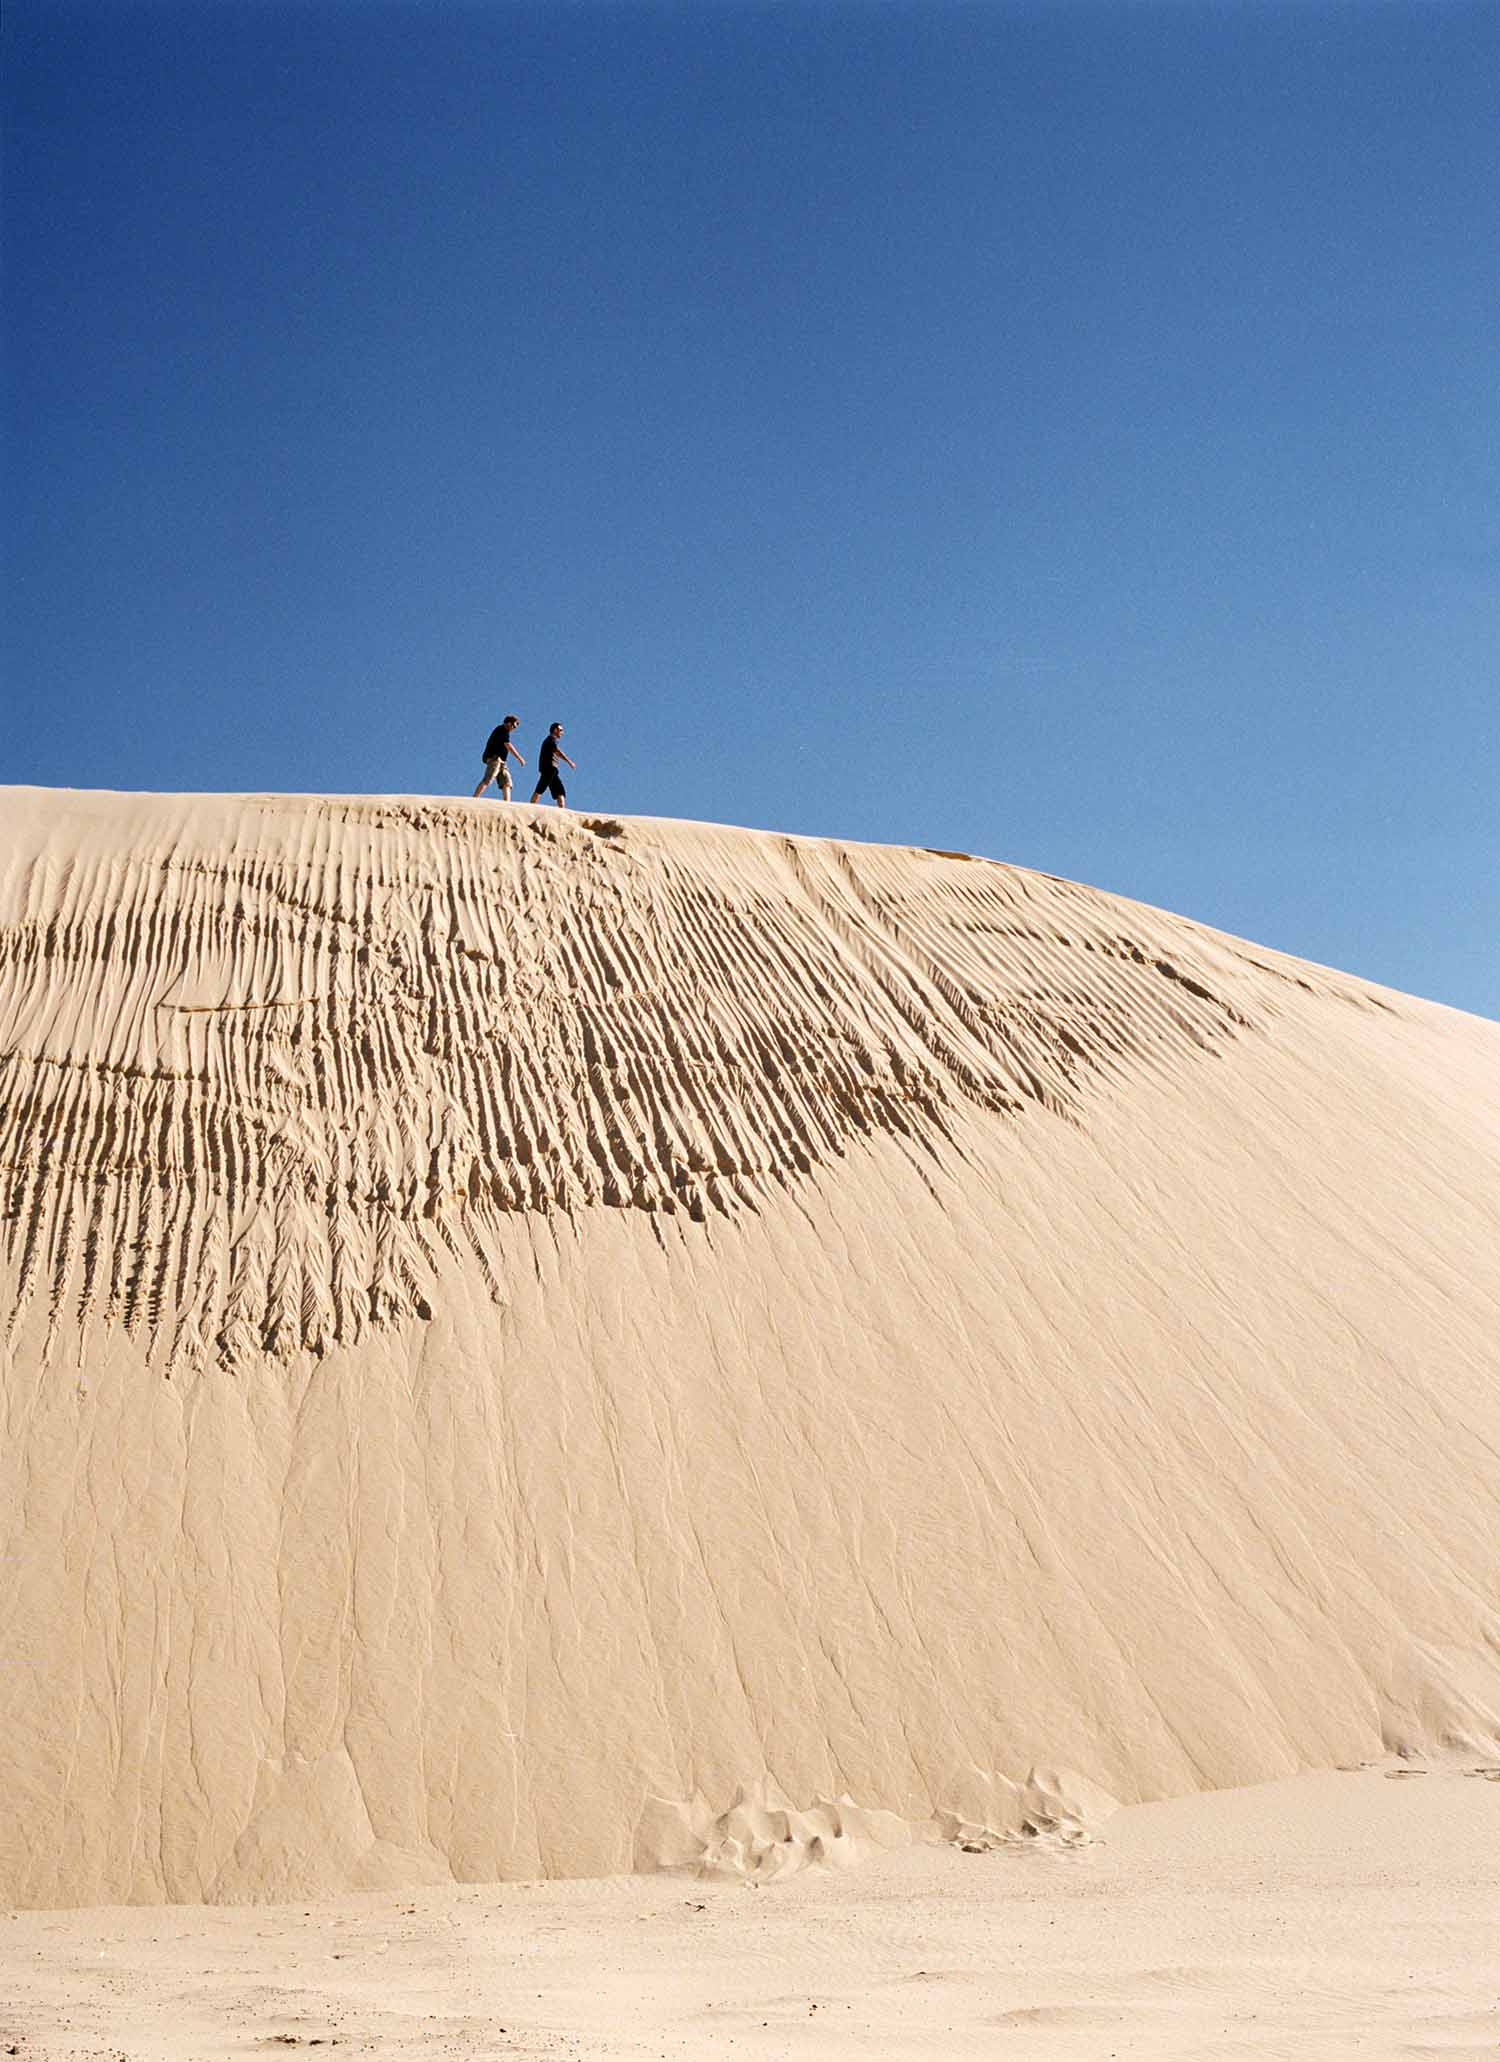 People on Dune.jpg